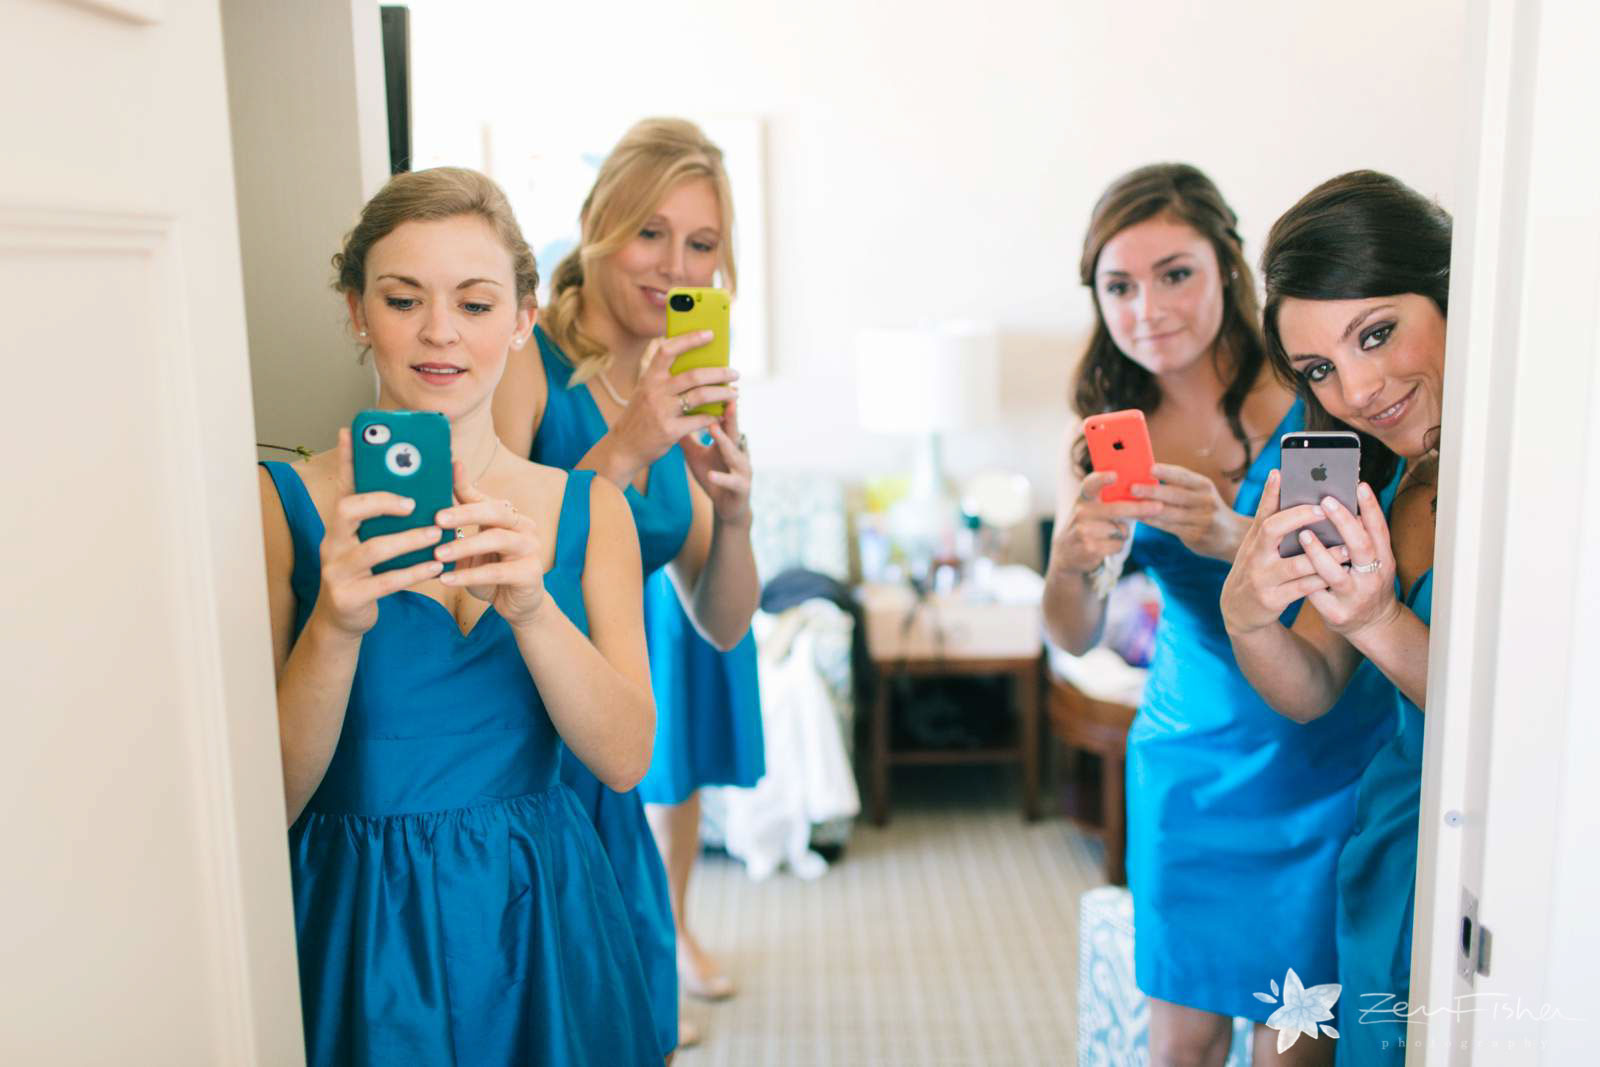 bridesmaids taking pictures with their iPhones and watching bride getting ready.